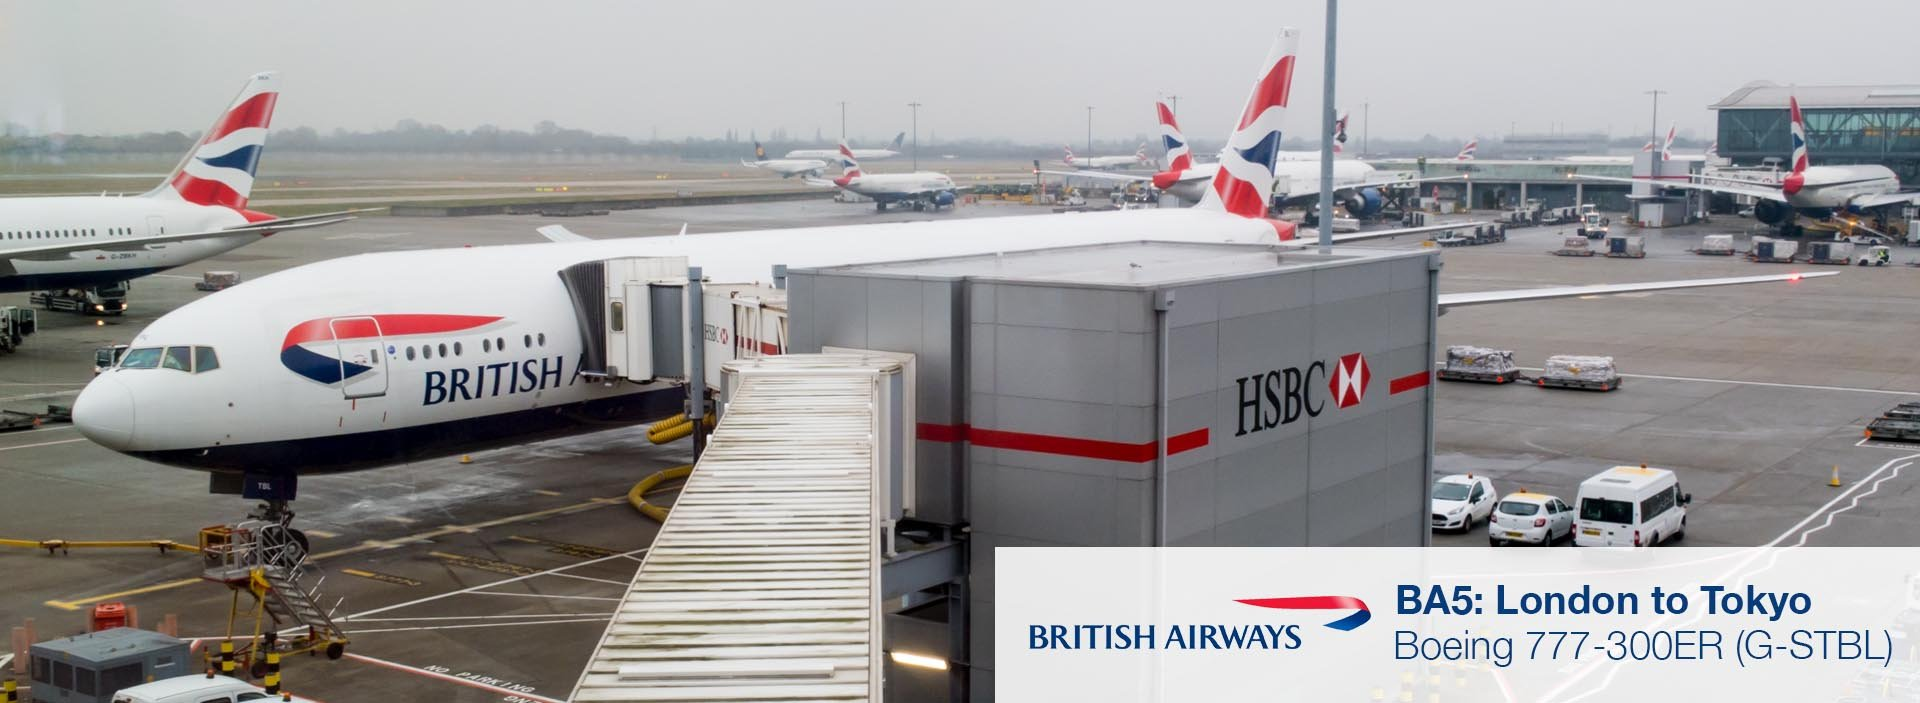 Flight Review: British Airways 777-300ER Economy Class from London Heathrow to Tokyo Narita